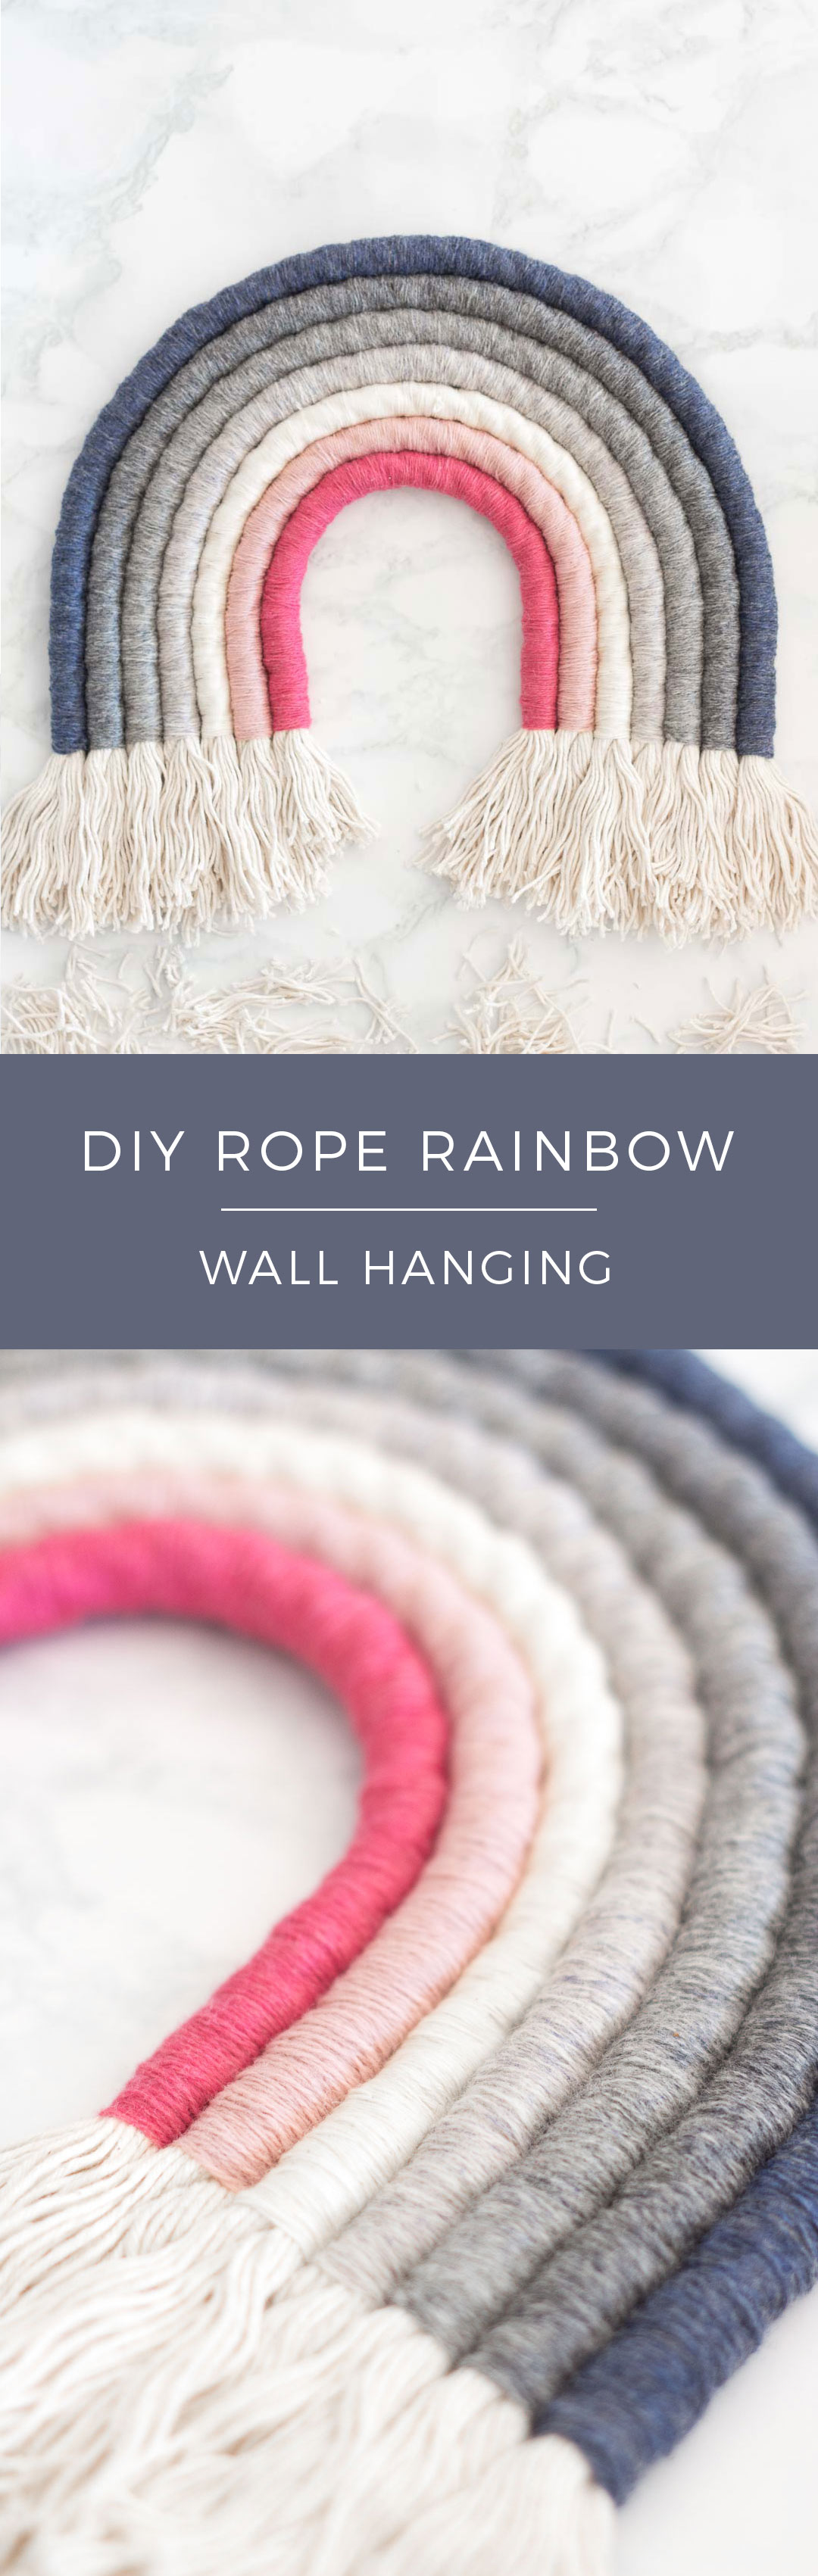 Gorgeous Rope Rainbow Wall Hanging DIY - Make your own rope rainbow in the colours and textures that you want. Perfect statement in a nursery, bedroom or living area.